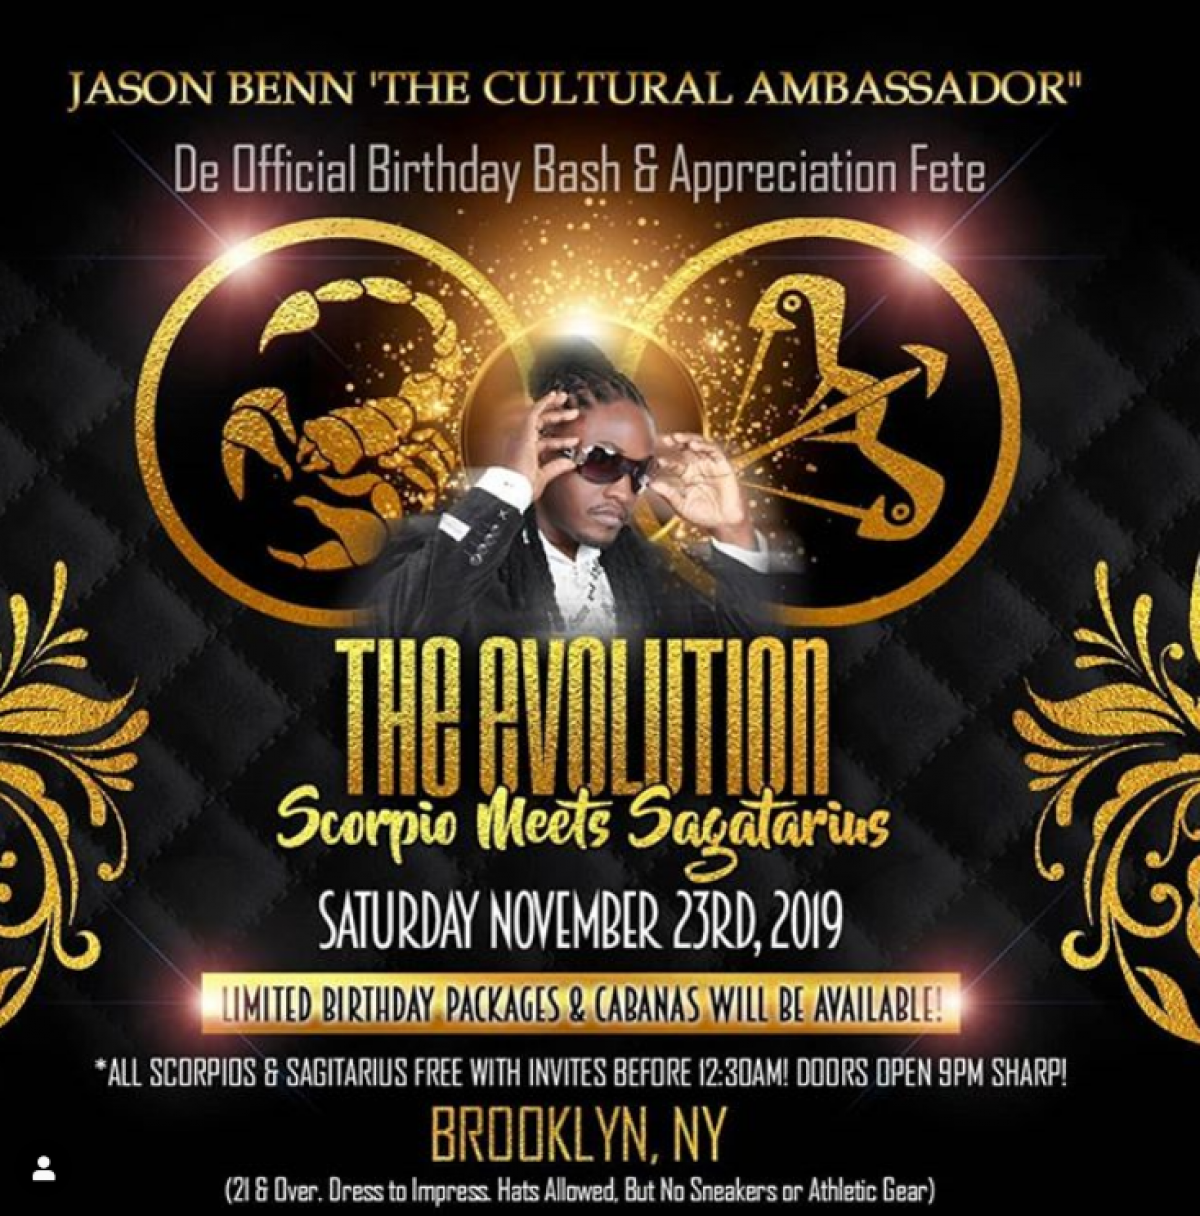 The Evolution flyer or graphic.